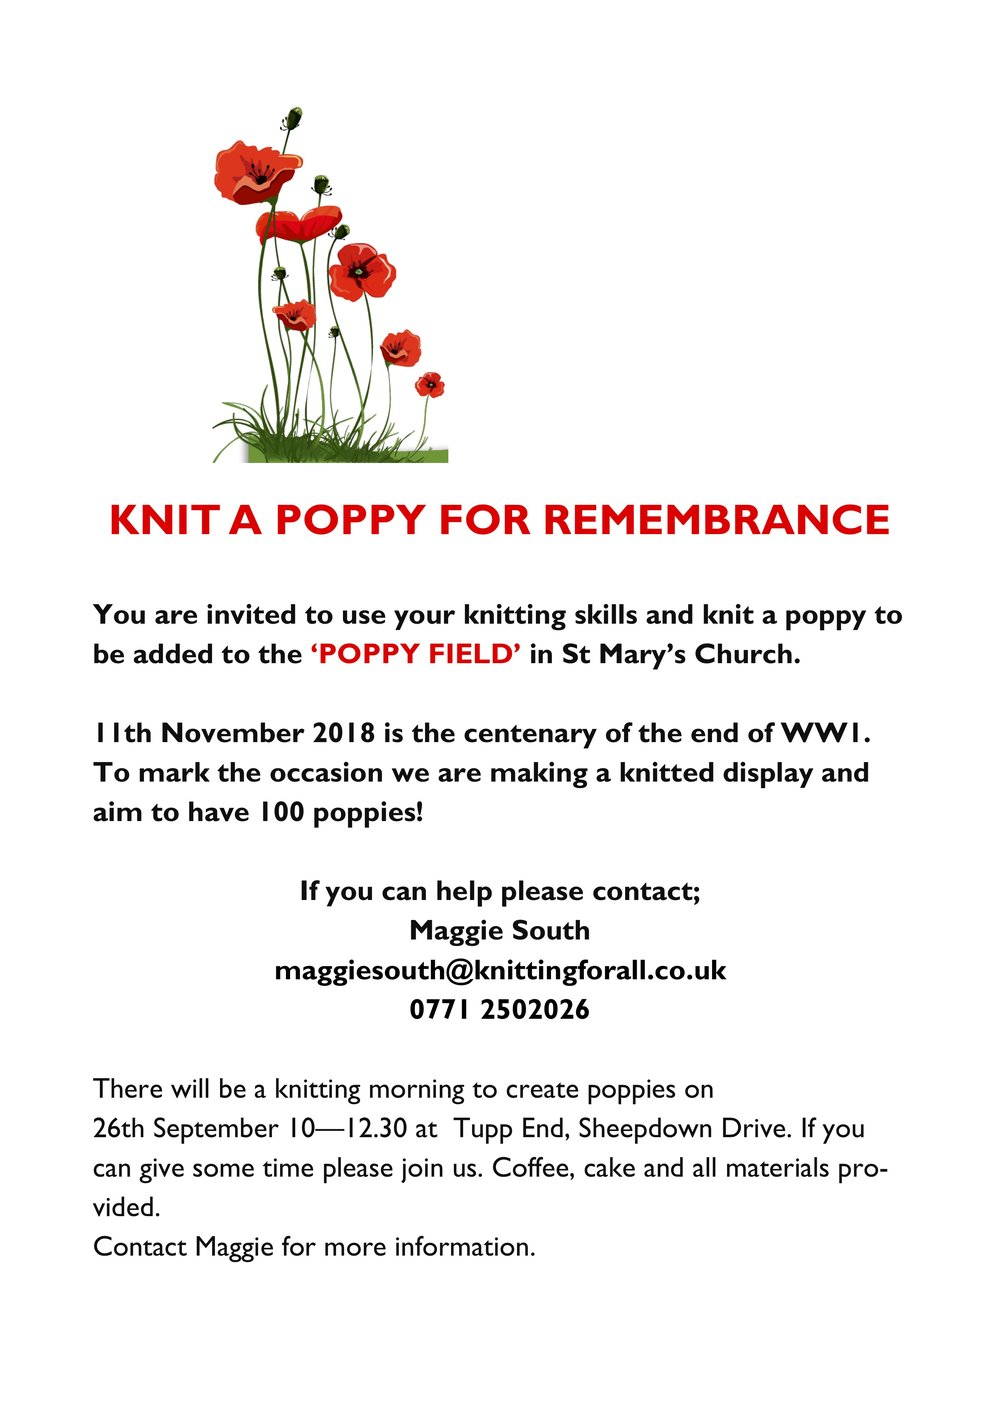 KNIT A POPPY FOR REMEMBRANCE